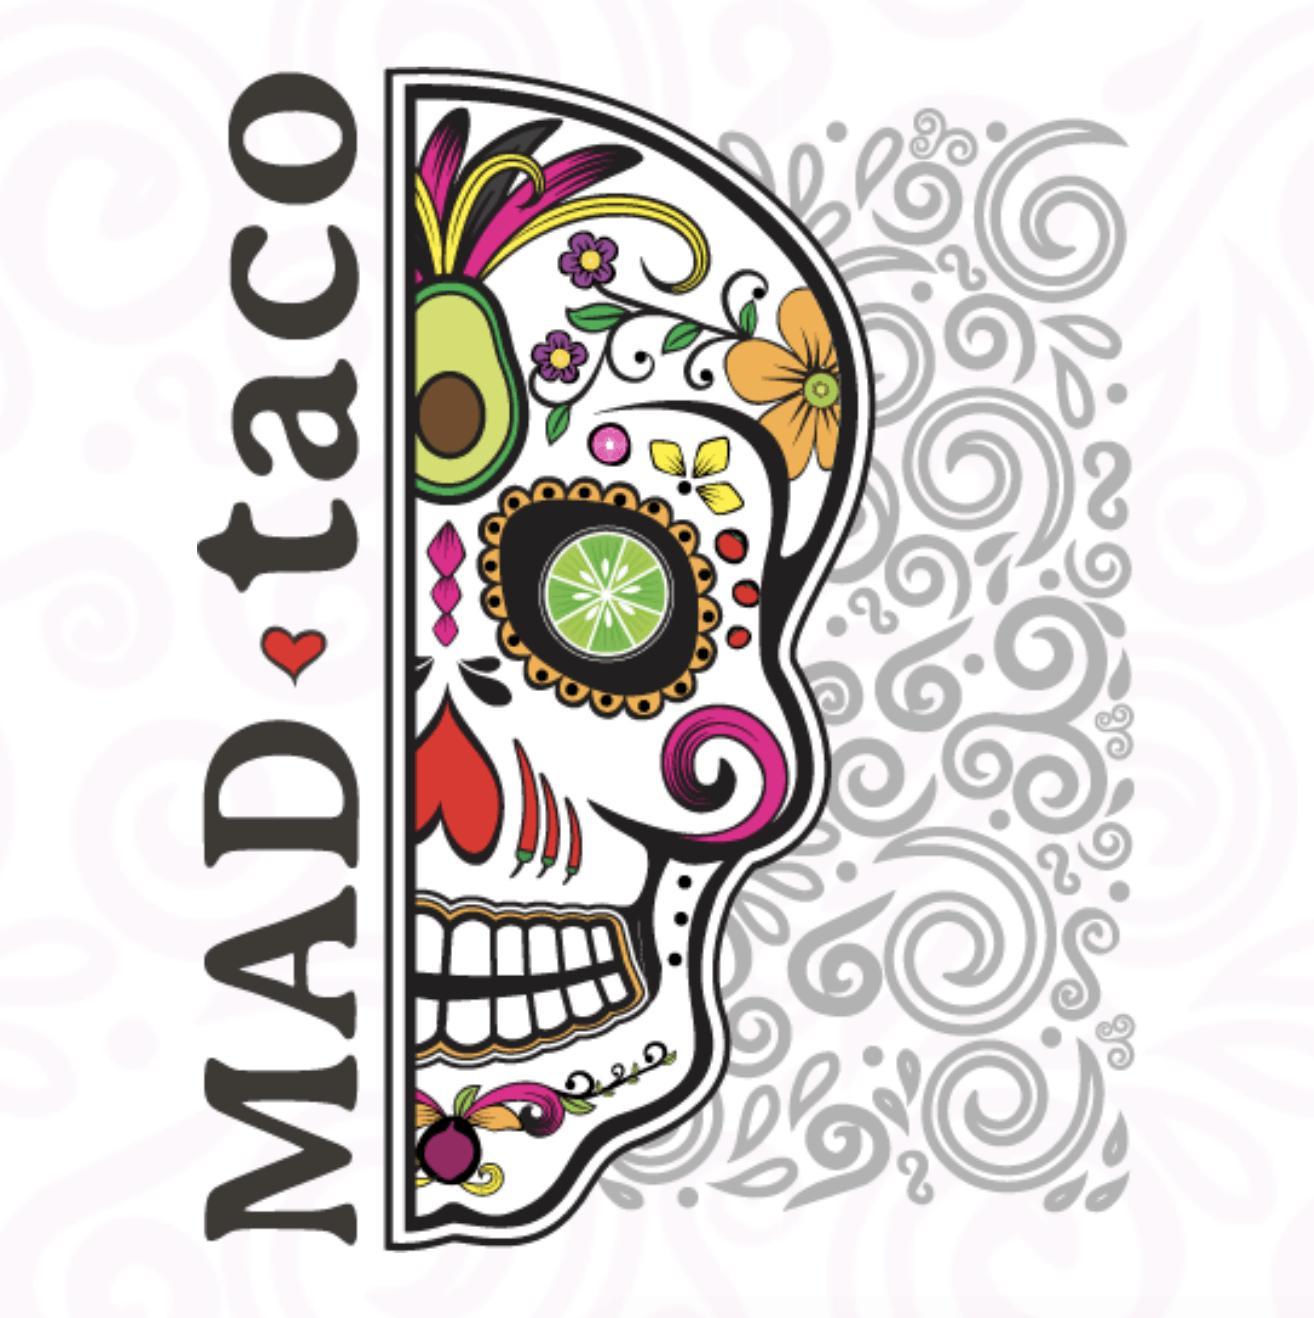 Restaurant logo - MAD Taco